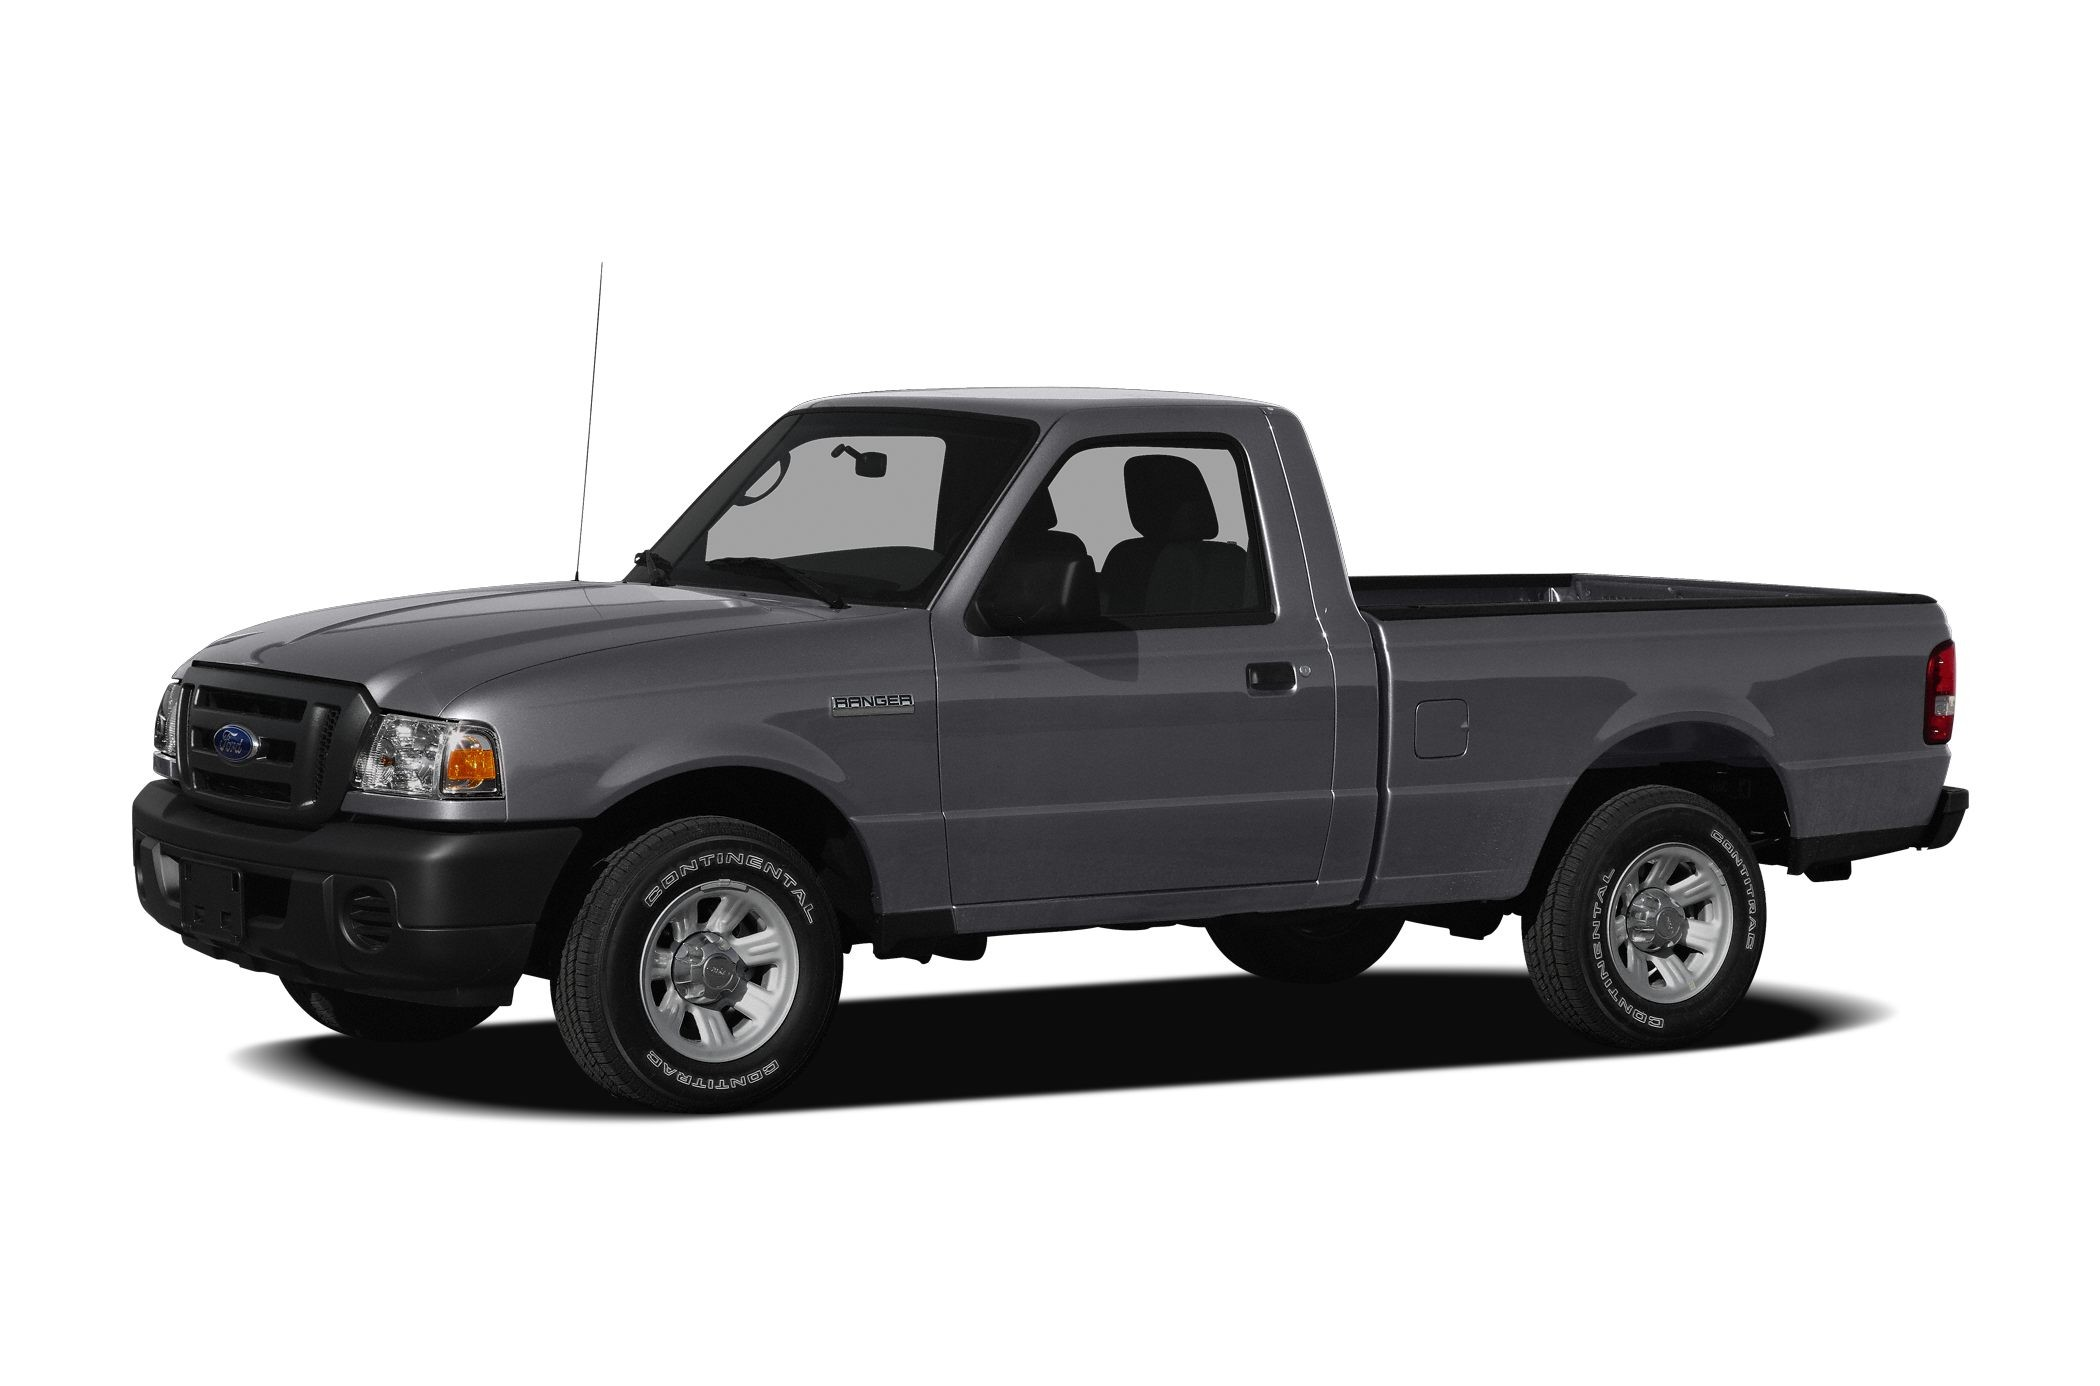 2003 Ford Ranger 2 3 Engine Diagram 2011 Specs And 3l Prices Of